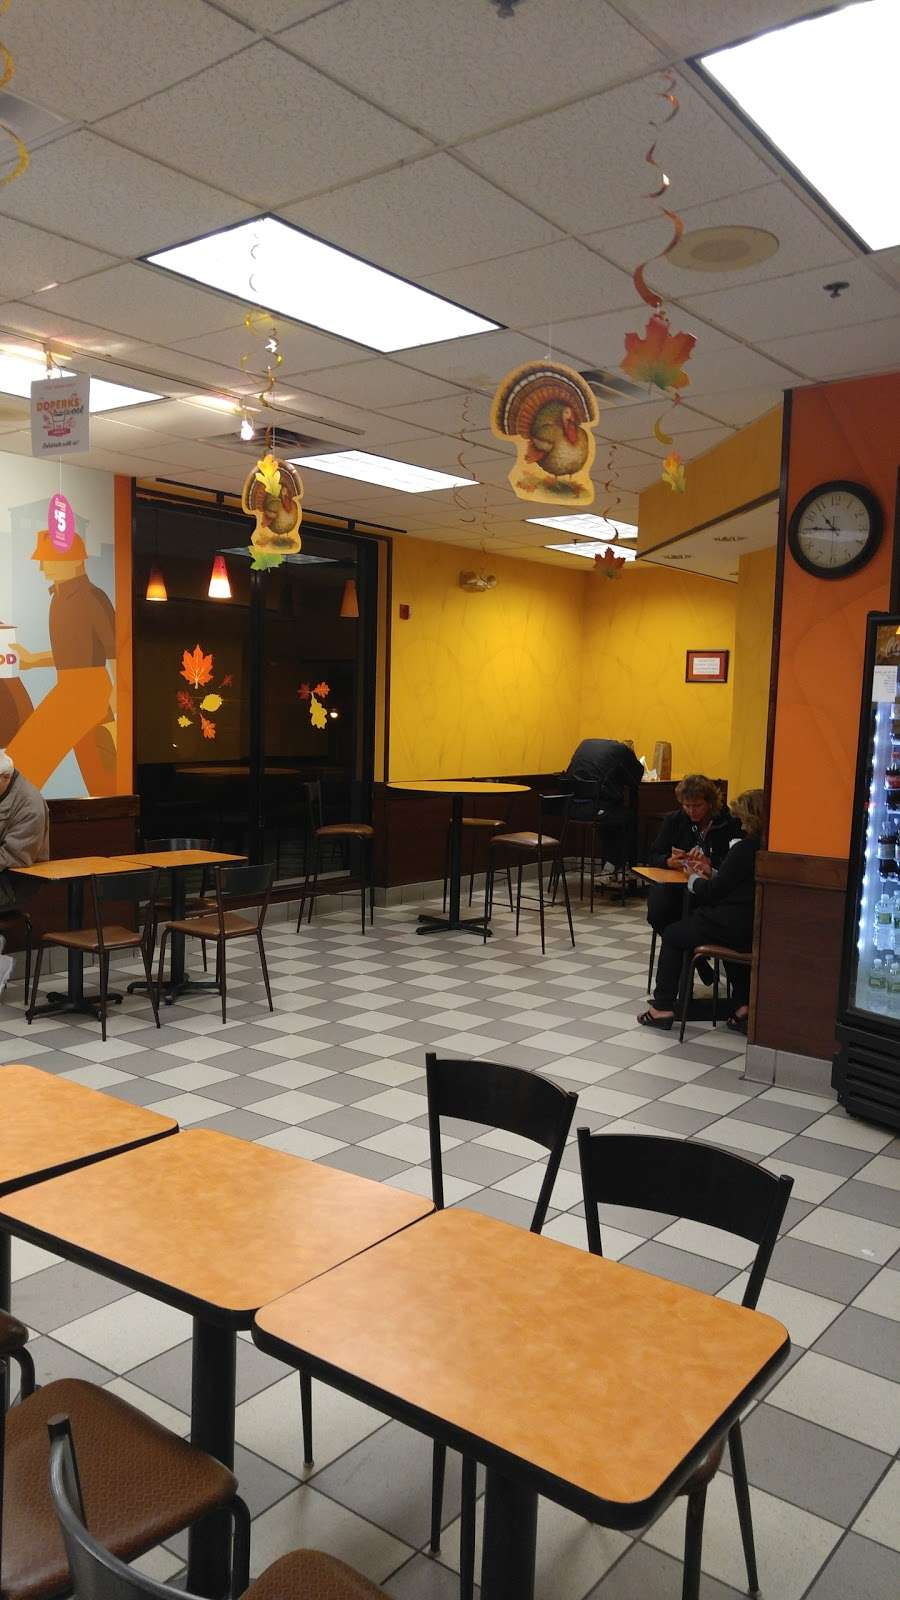 Dunkin Donuts - cafe  | Photo 4 of 10 | Address: 850 Bronx River Rd, Yonkers, NY 10708, USA | Phone: (914) 237-5921